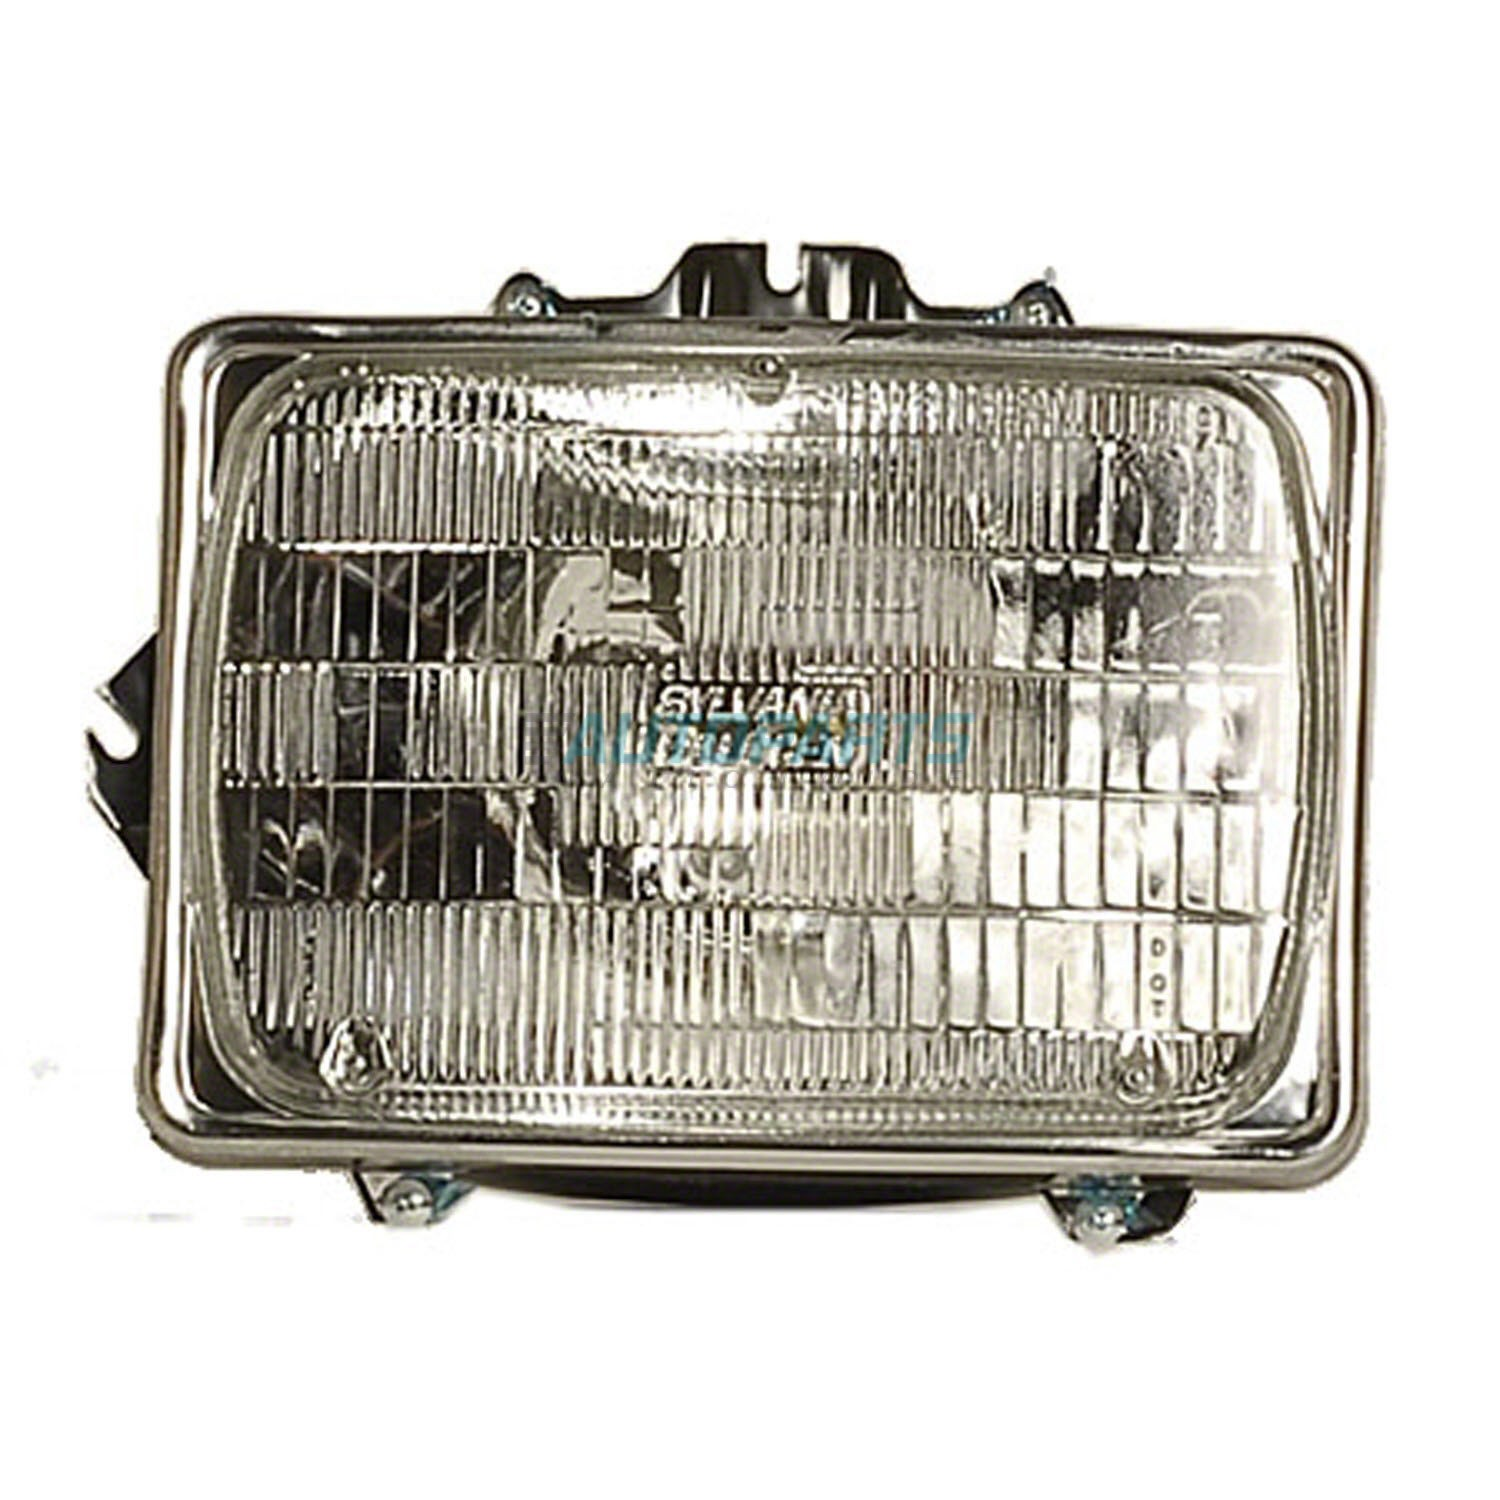 Details about NEW LEFT HEADLIGHT SEALED BEAM FITS 1992-2008 FORD E-150  ECONOLINE FO2500127